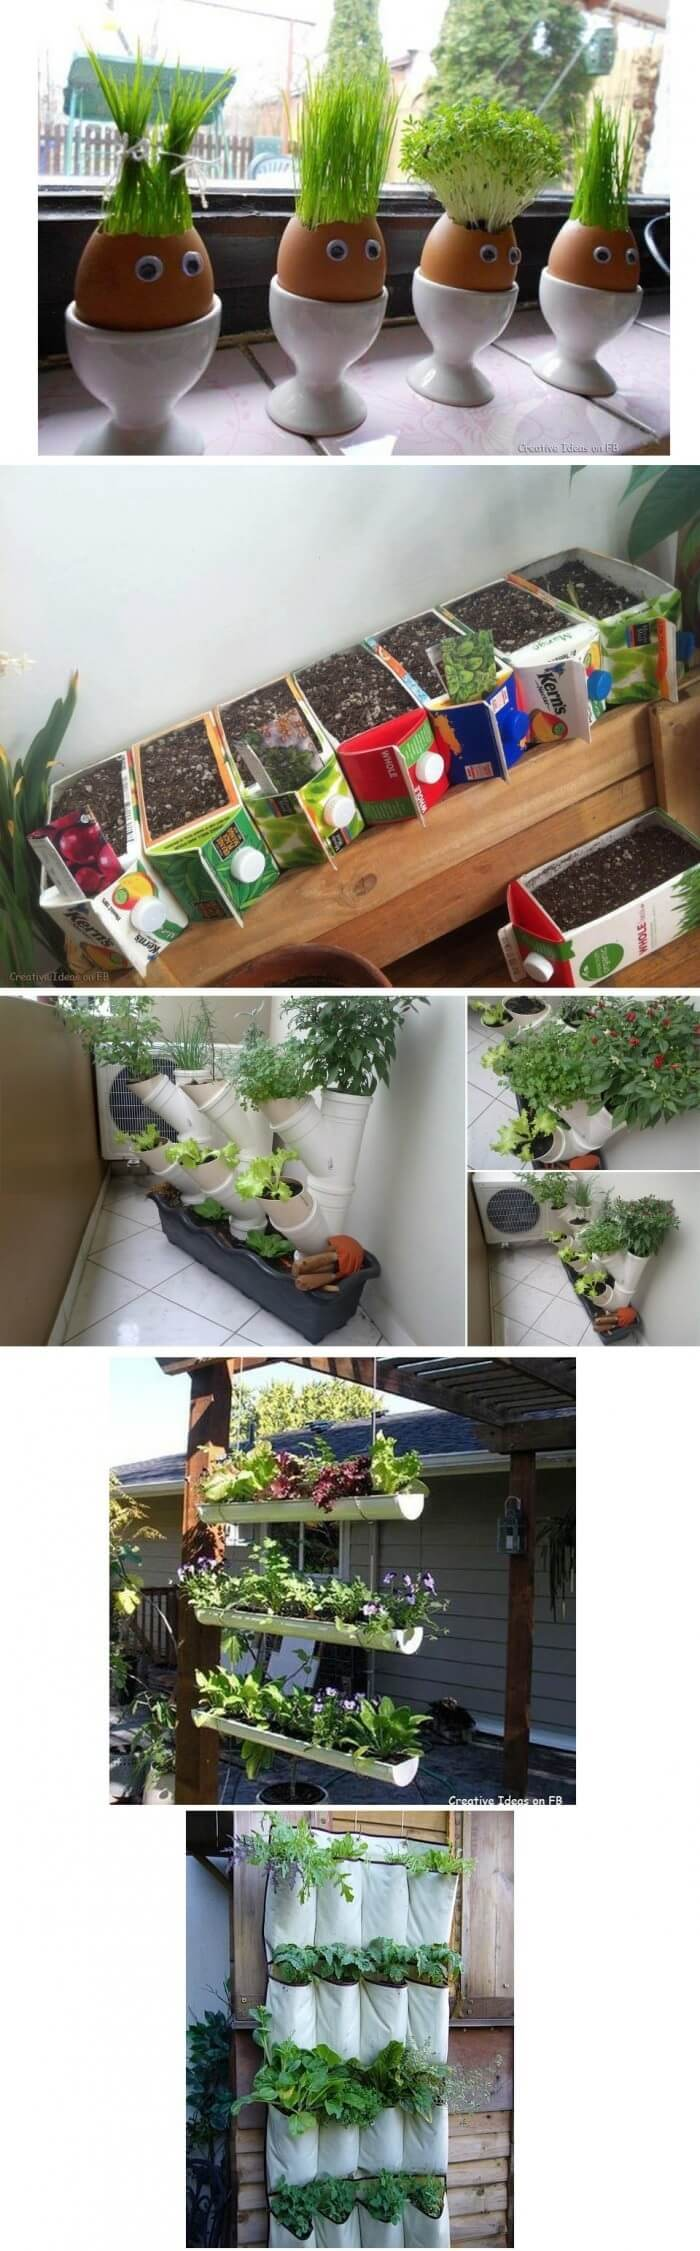 Simple indoor idea | Smart Mini Indoor Garden Ideas DIY - FarmFoodFamily.com